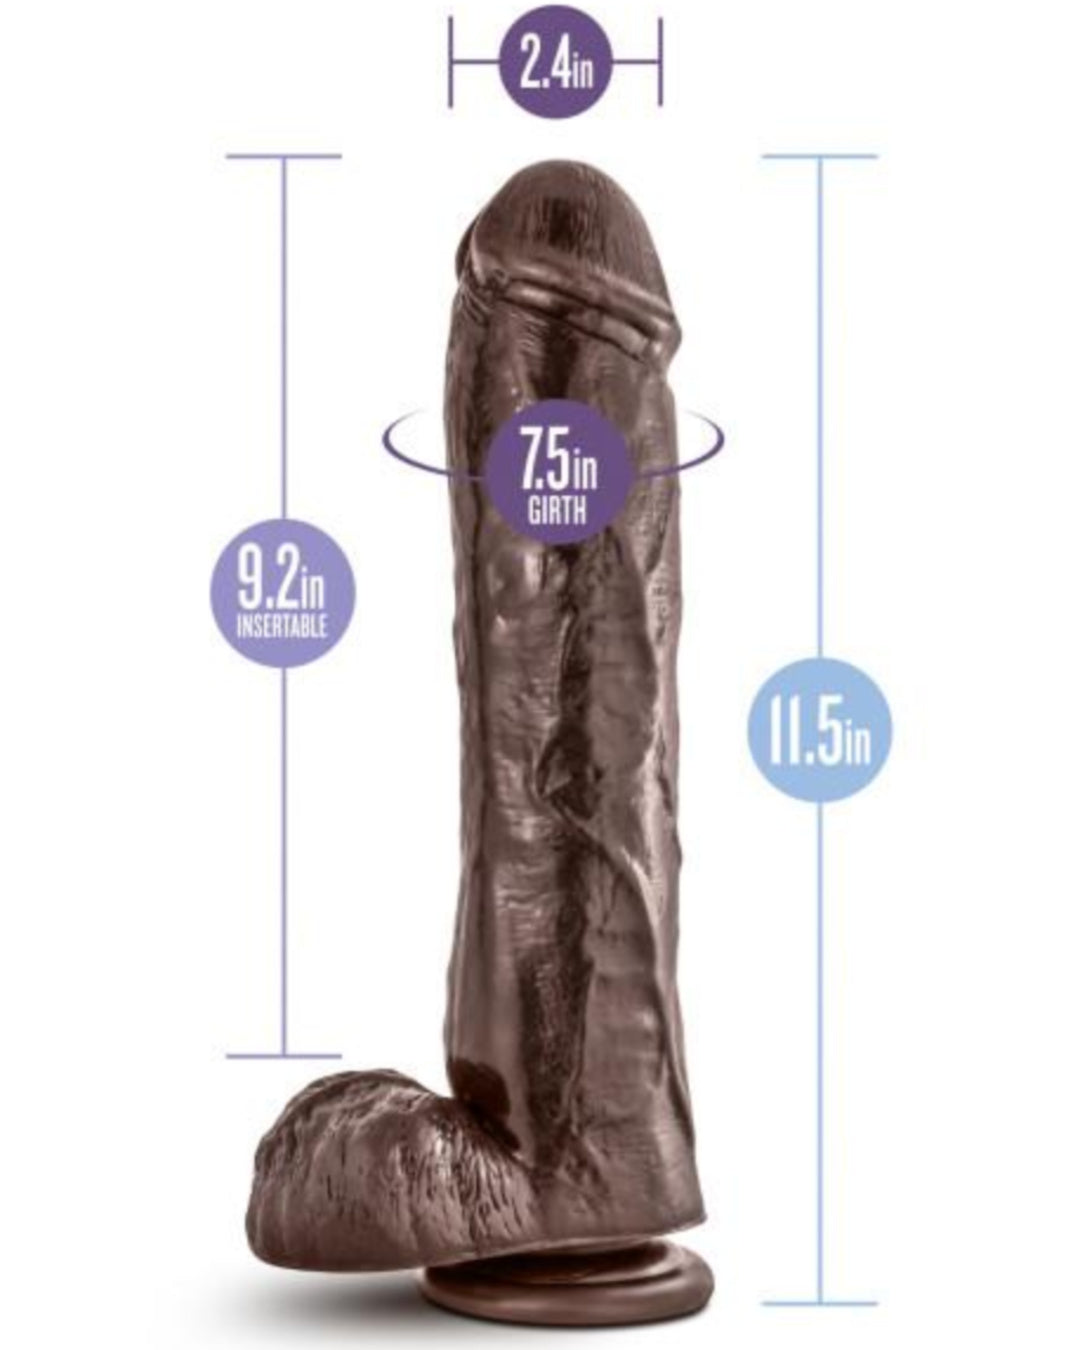 Dr Skin Mr Savage 11.5 inch Dildo with Suction Cup by Blush Novelties - Chocolate Measurements